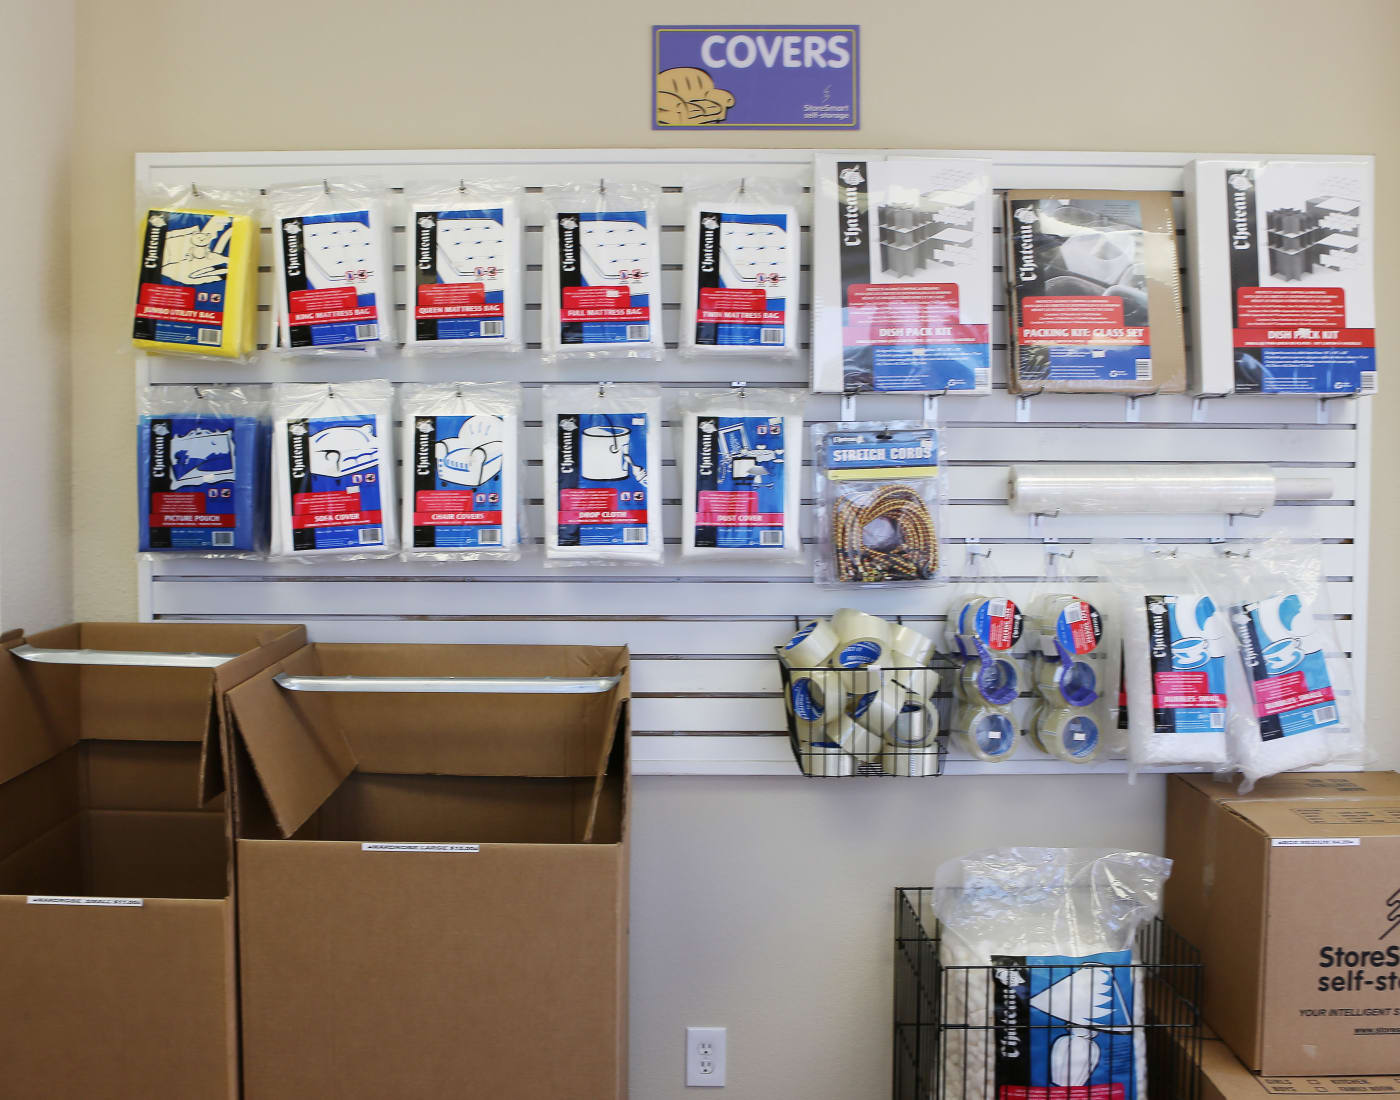 Packing and moving supplies for sale at StoreSmart Self-Storage in Rockledge, Florida